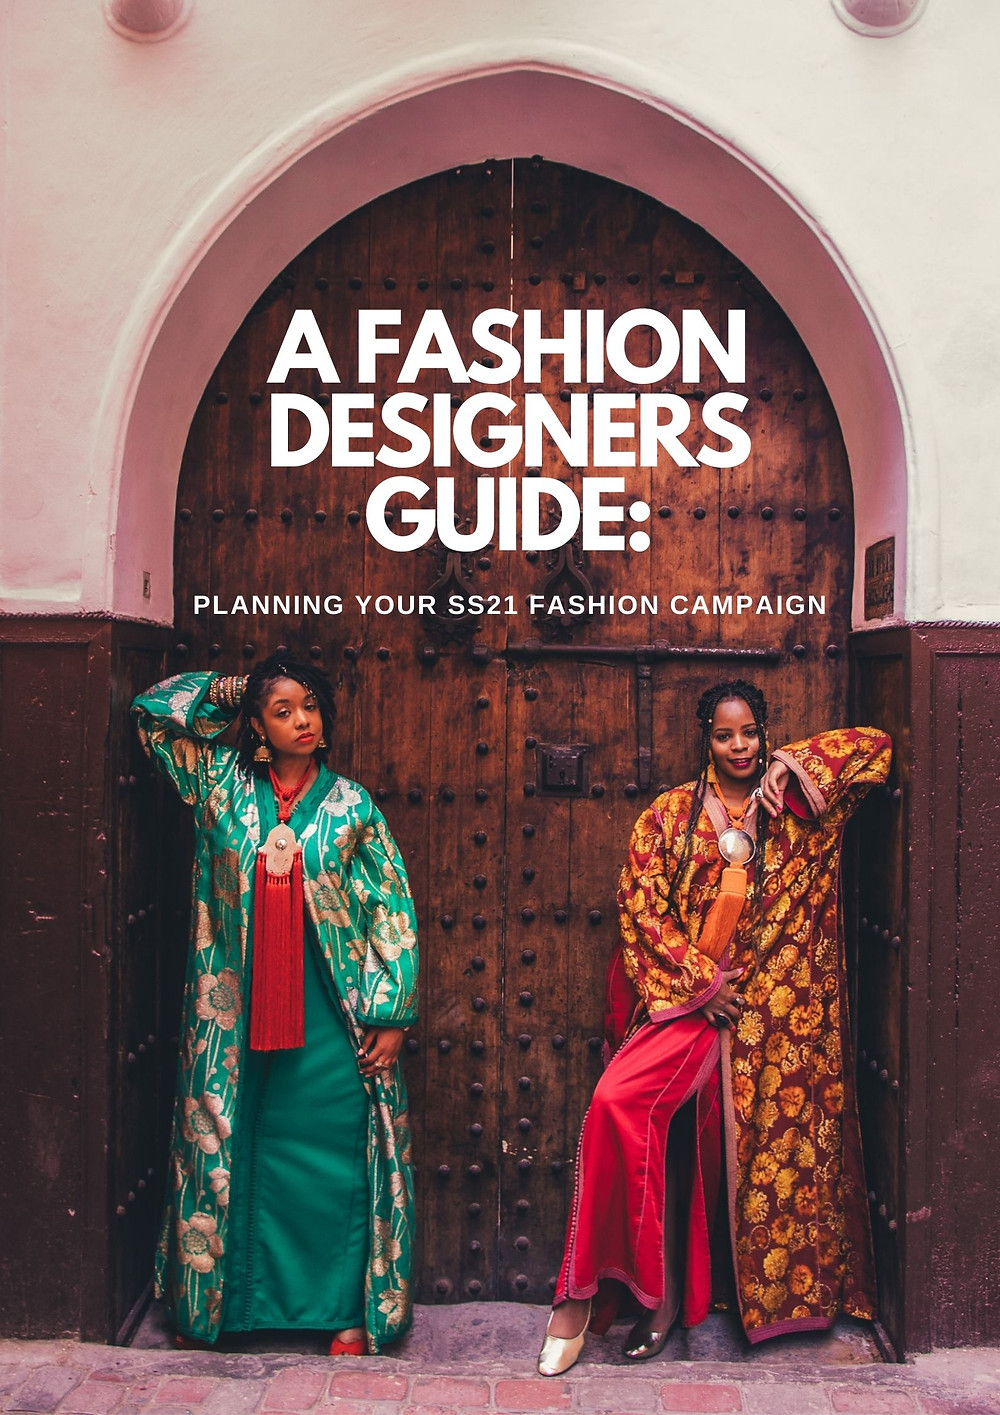 A FASHION DESIGNERS GUIDE: Planning your fashion campaign